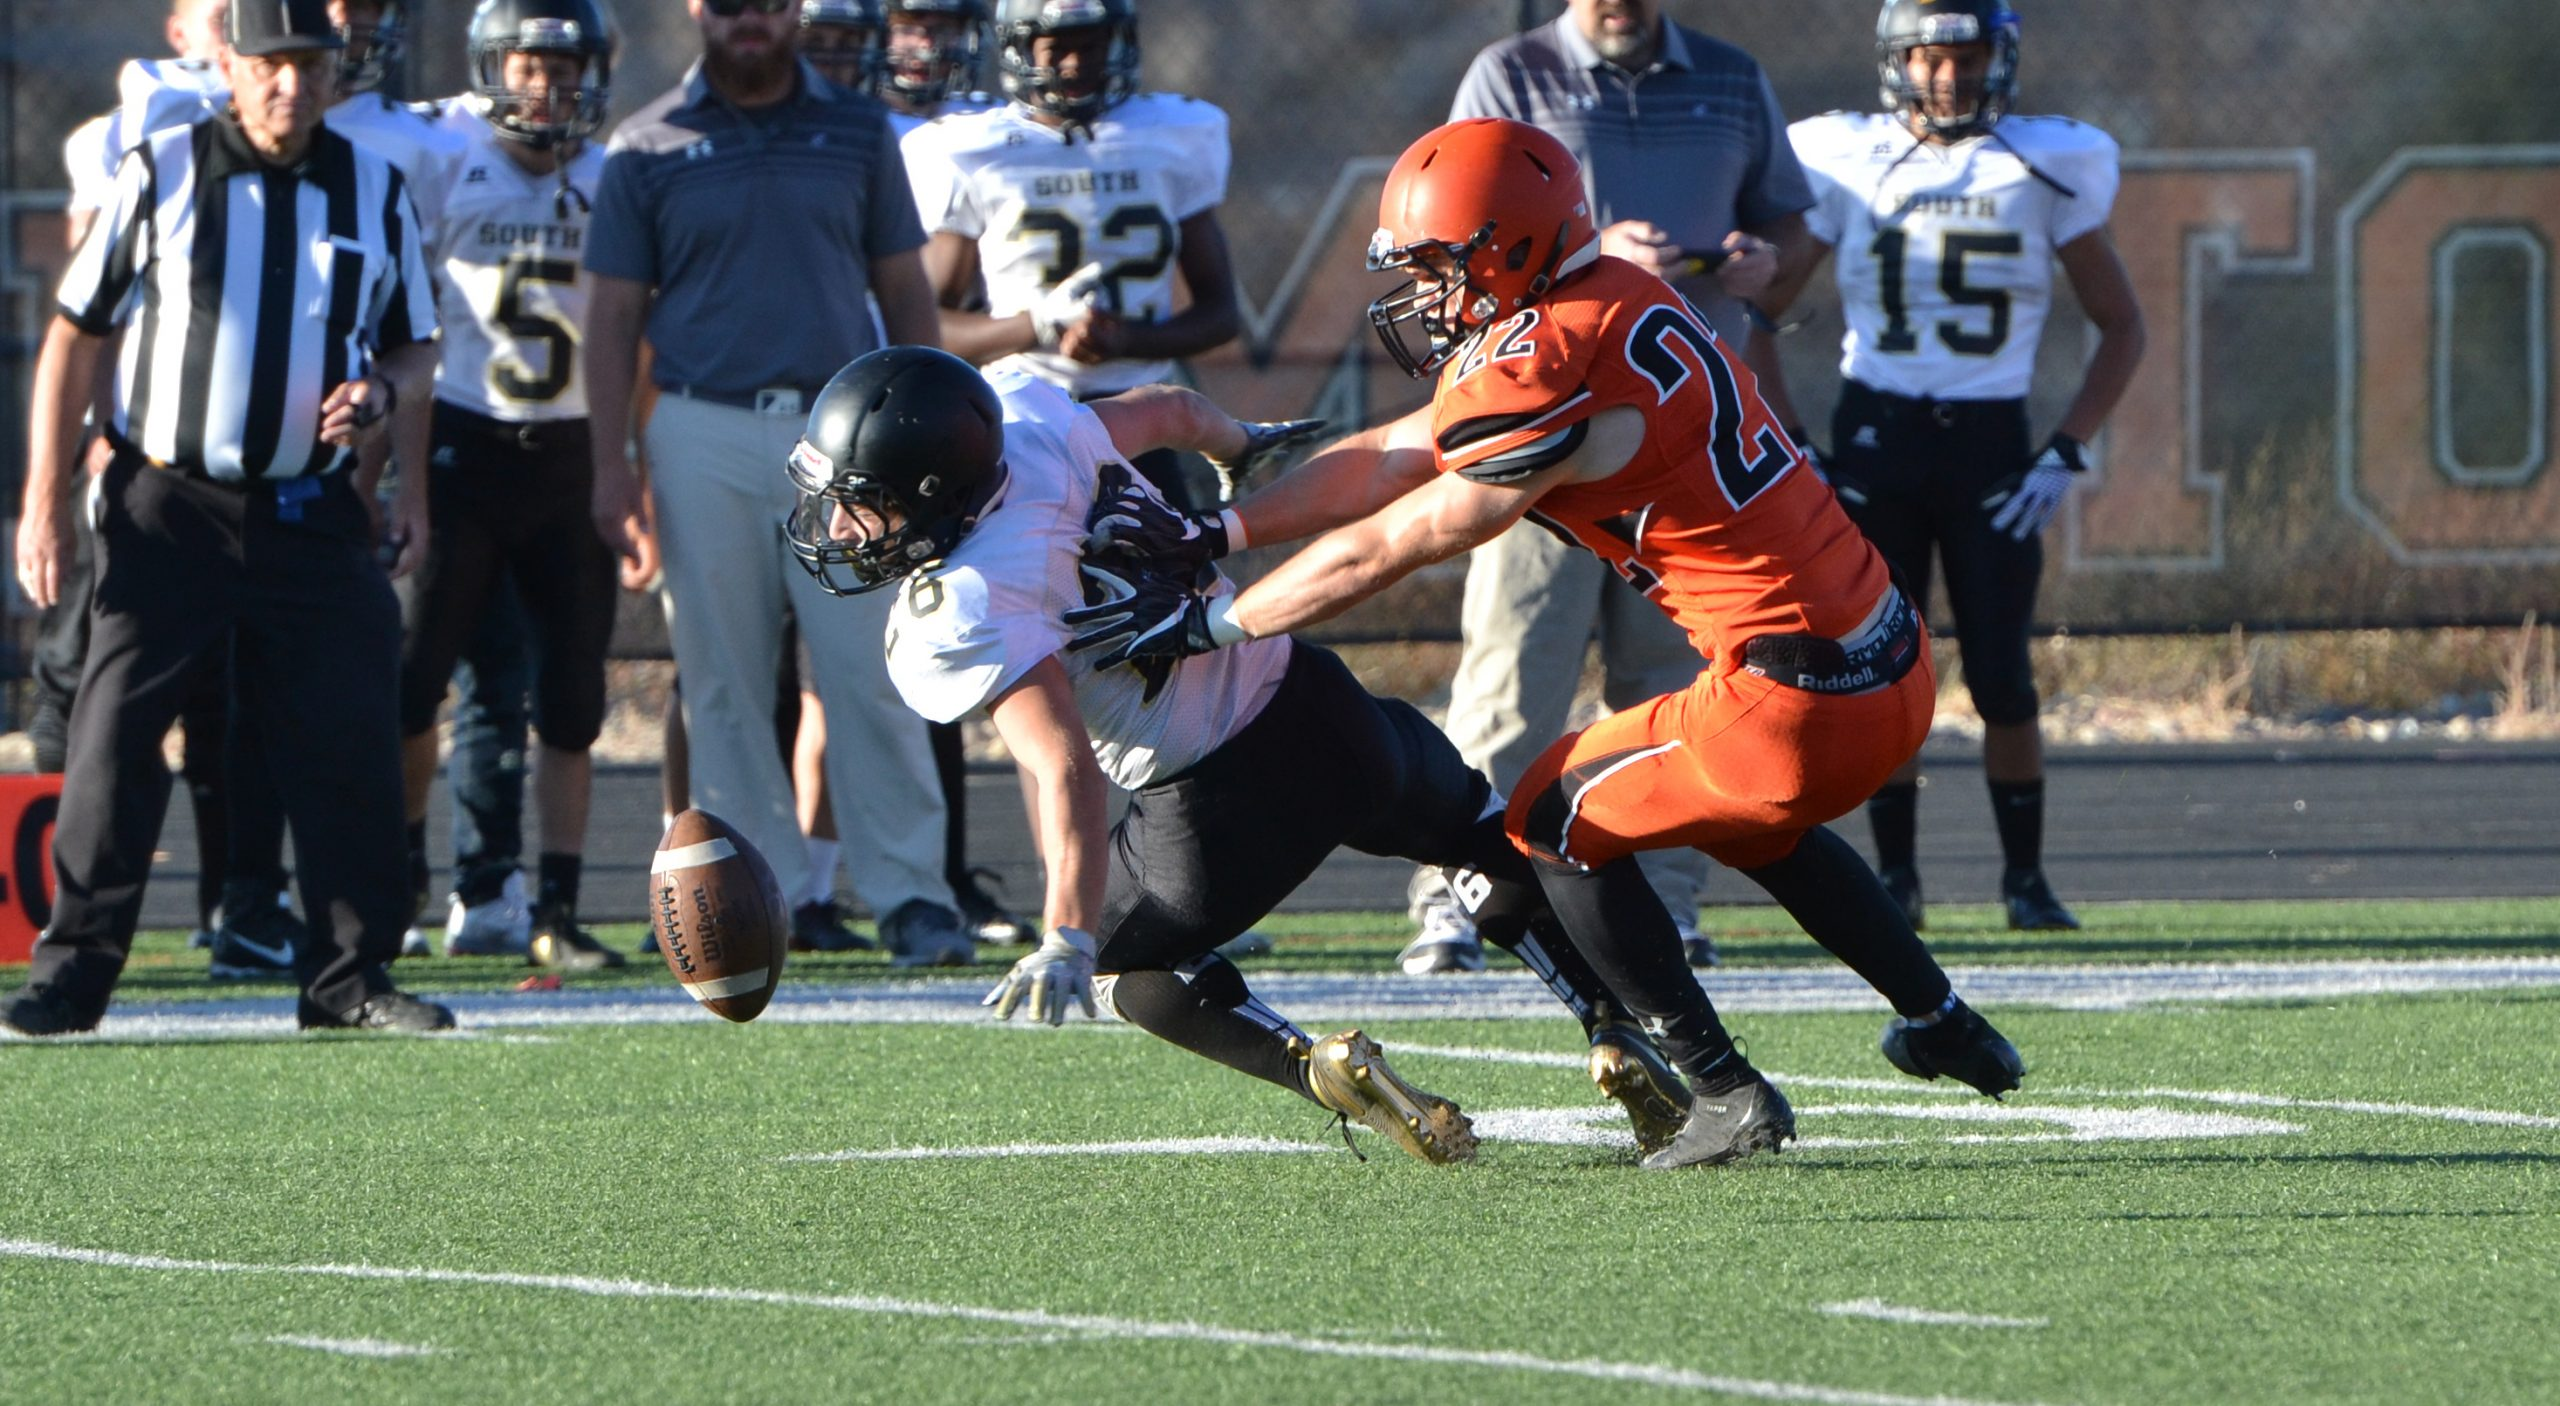 Tigers Defense Shutout Camels in 22-0 Win